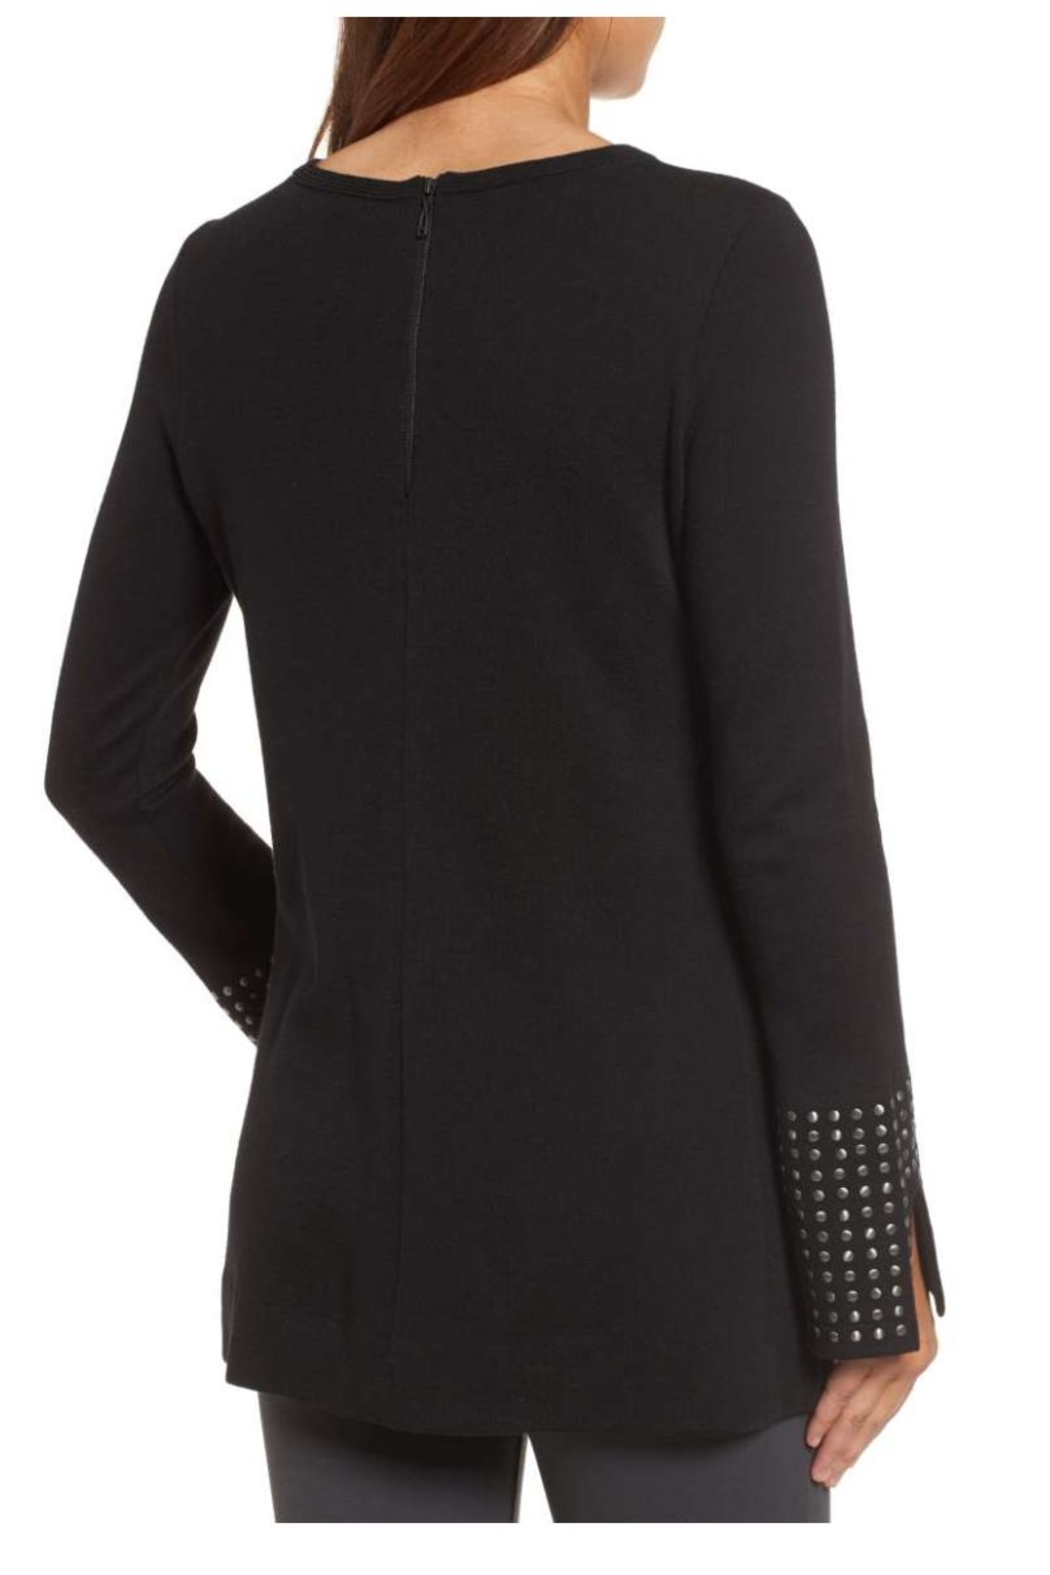 Nic + Zoe Stud Cuff Top - Front Full Image